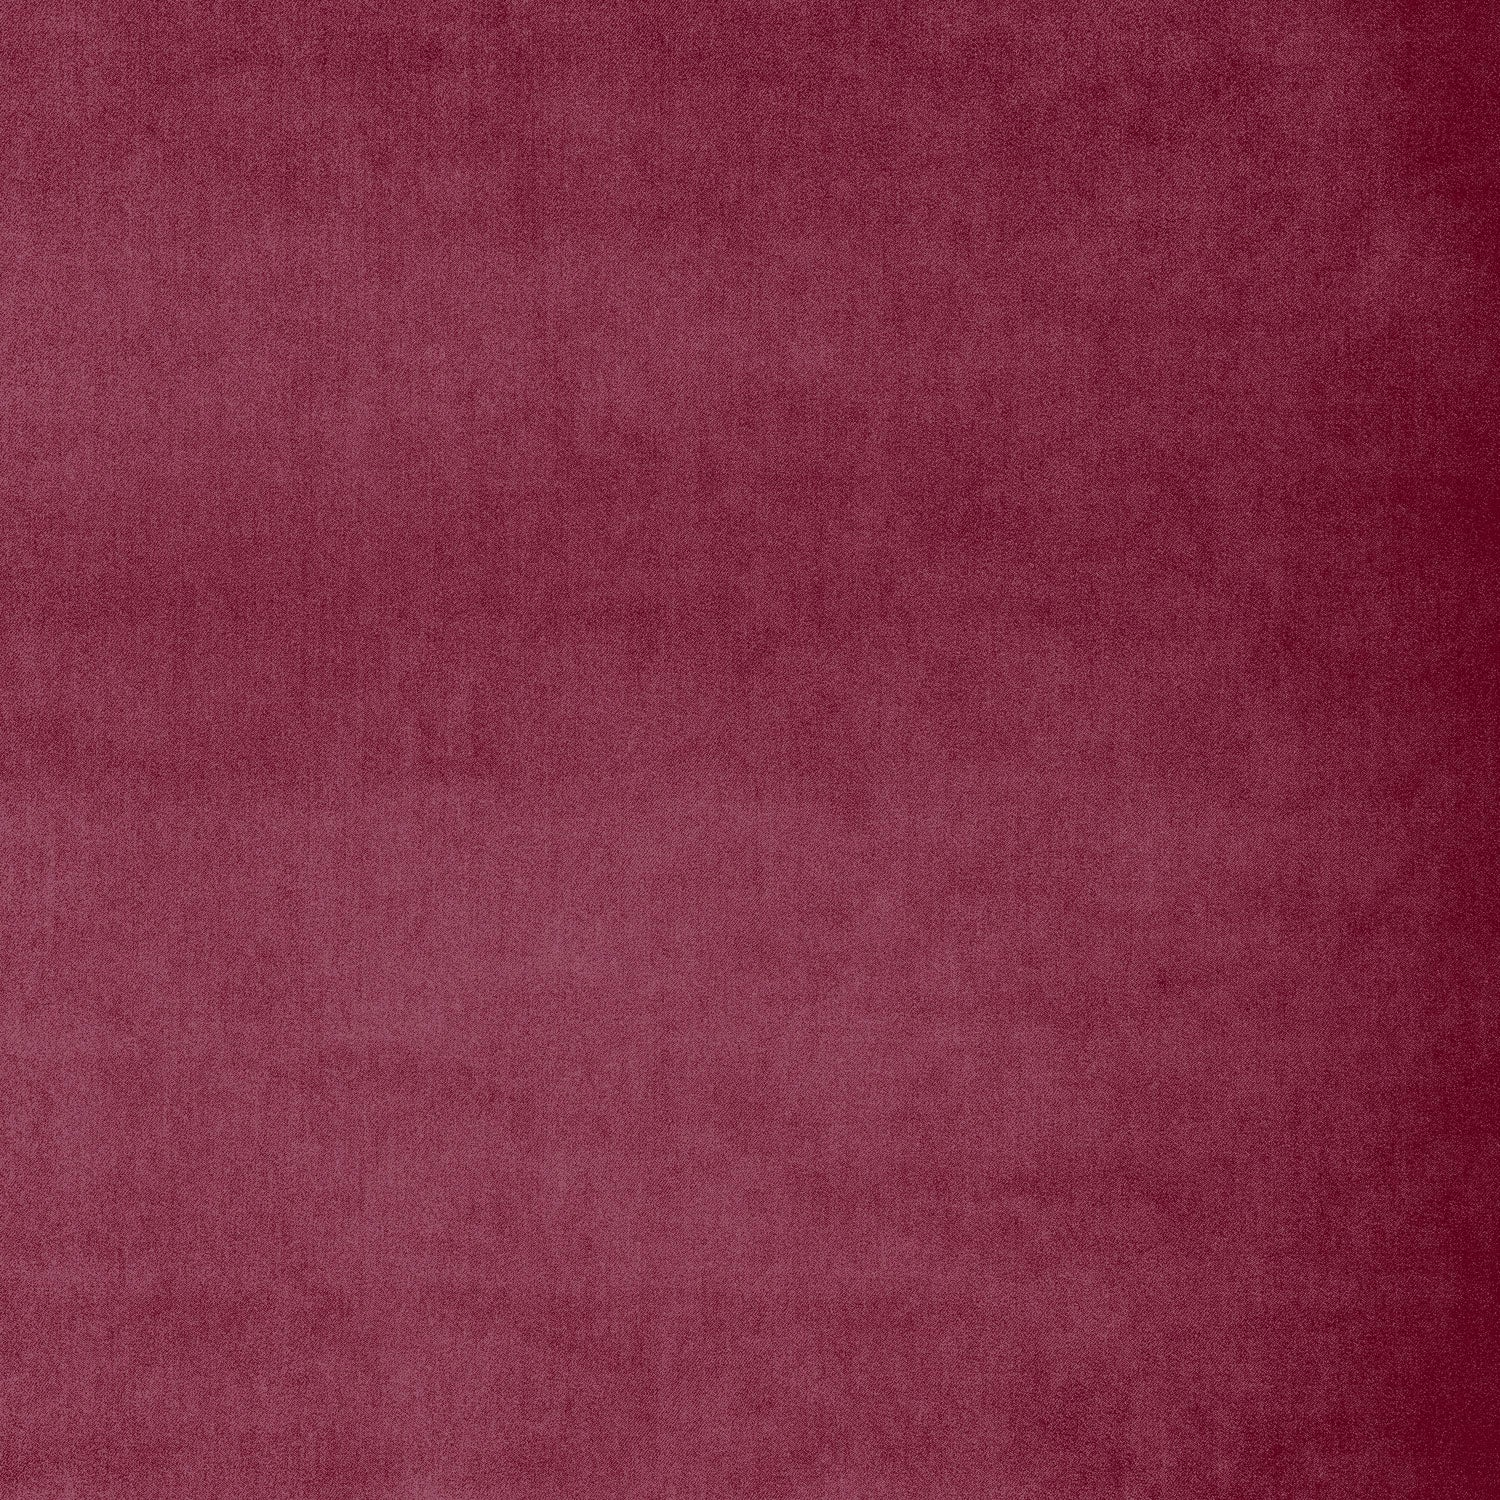 Fabric swatch of a luxury berry velvet fabric for curtains and upholstery with a stain resistant